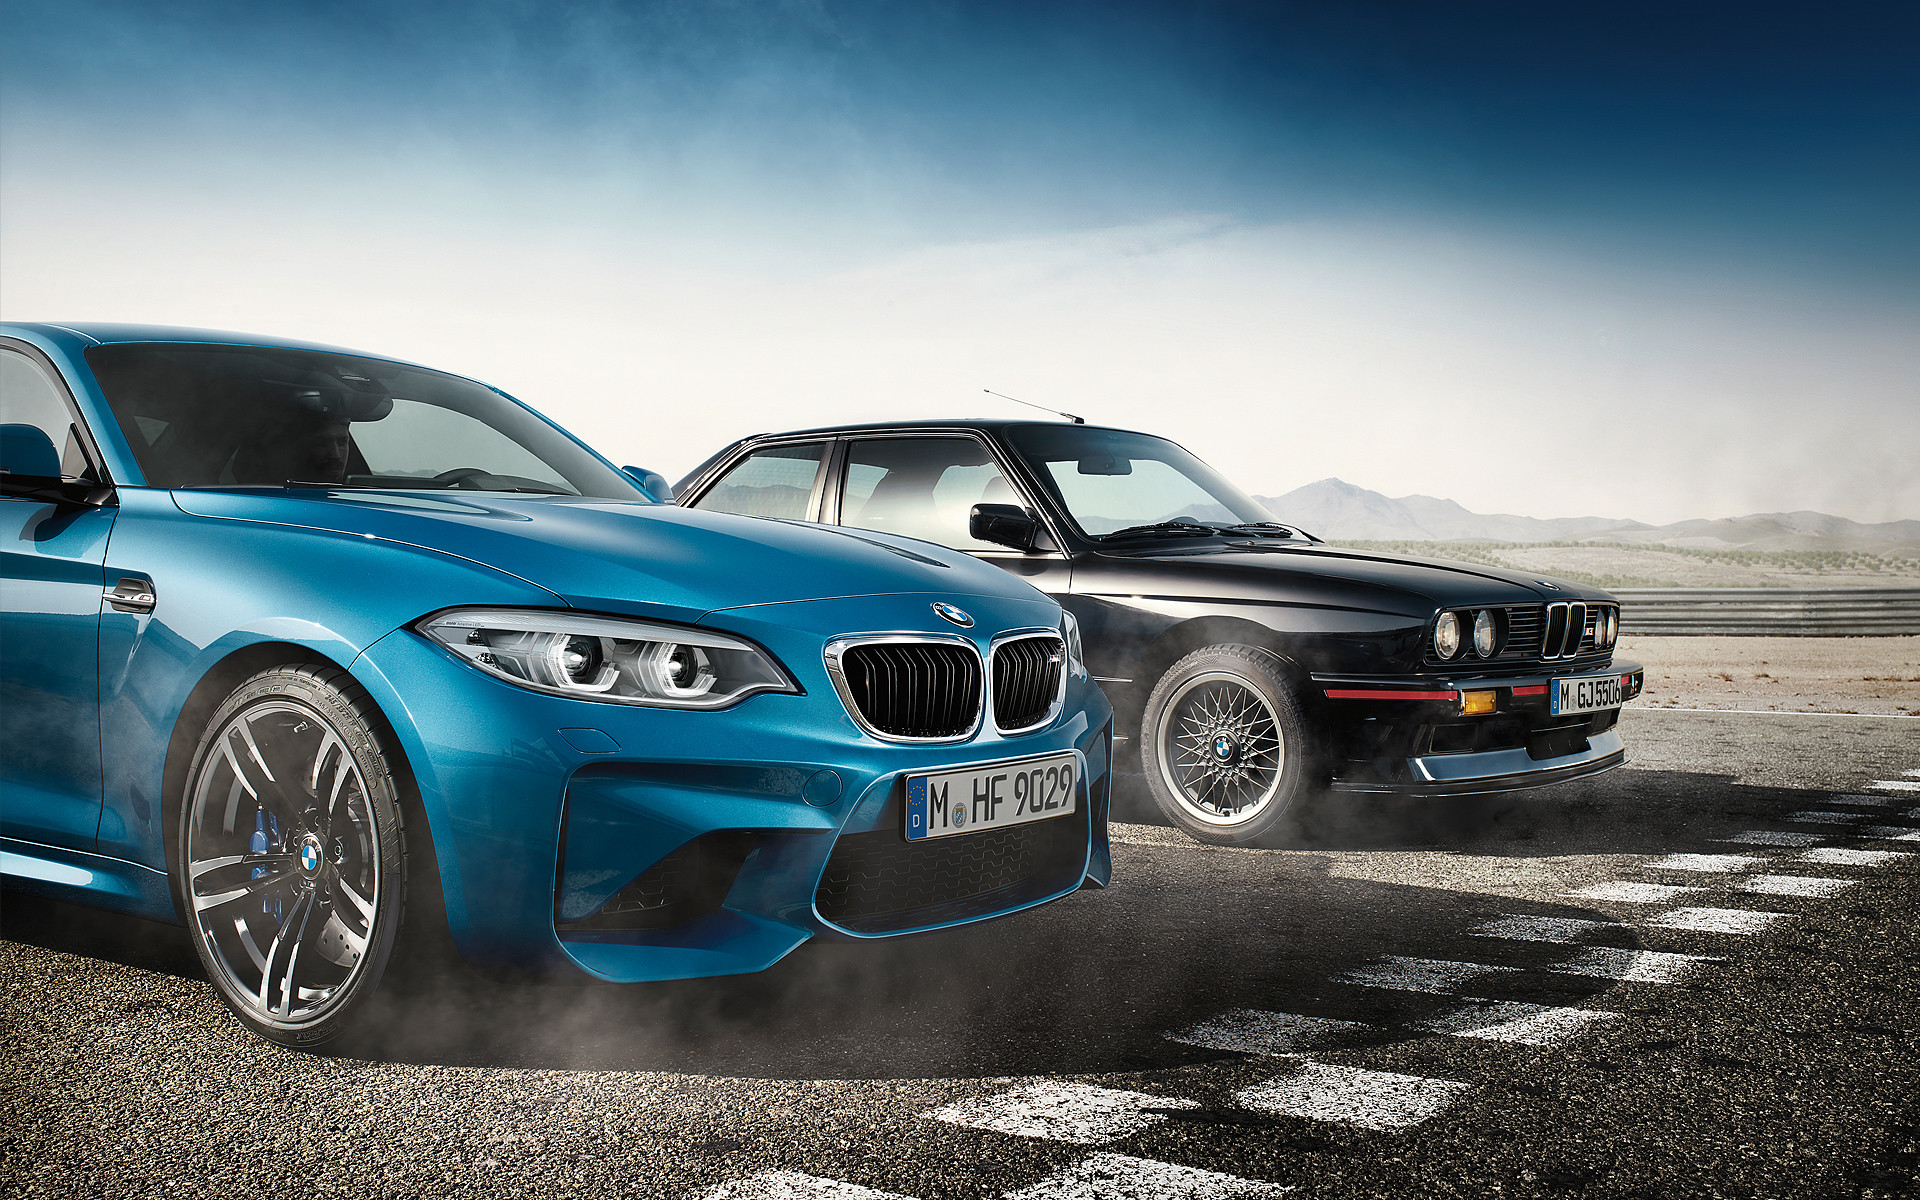 Bmw Hd Wallpapers Background: BMW M HD Wallpaper (57+ Images